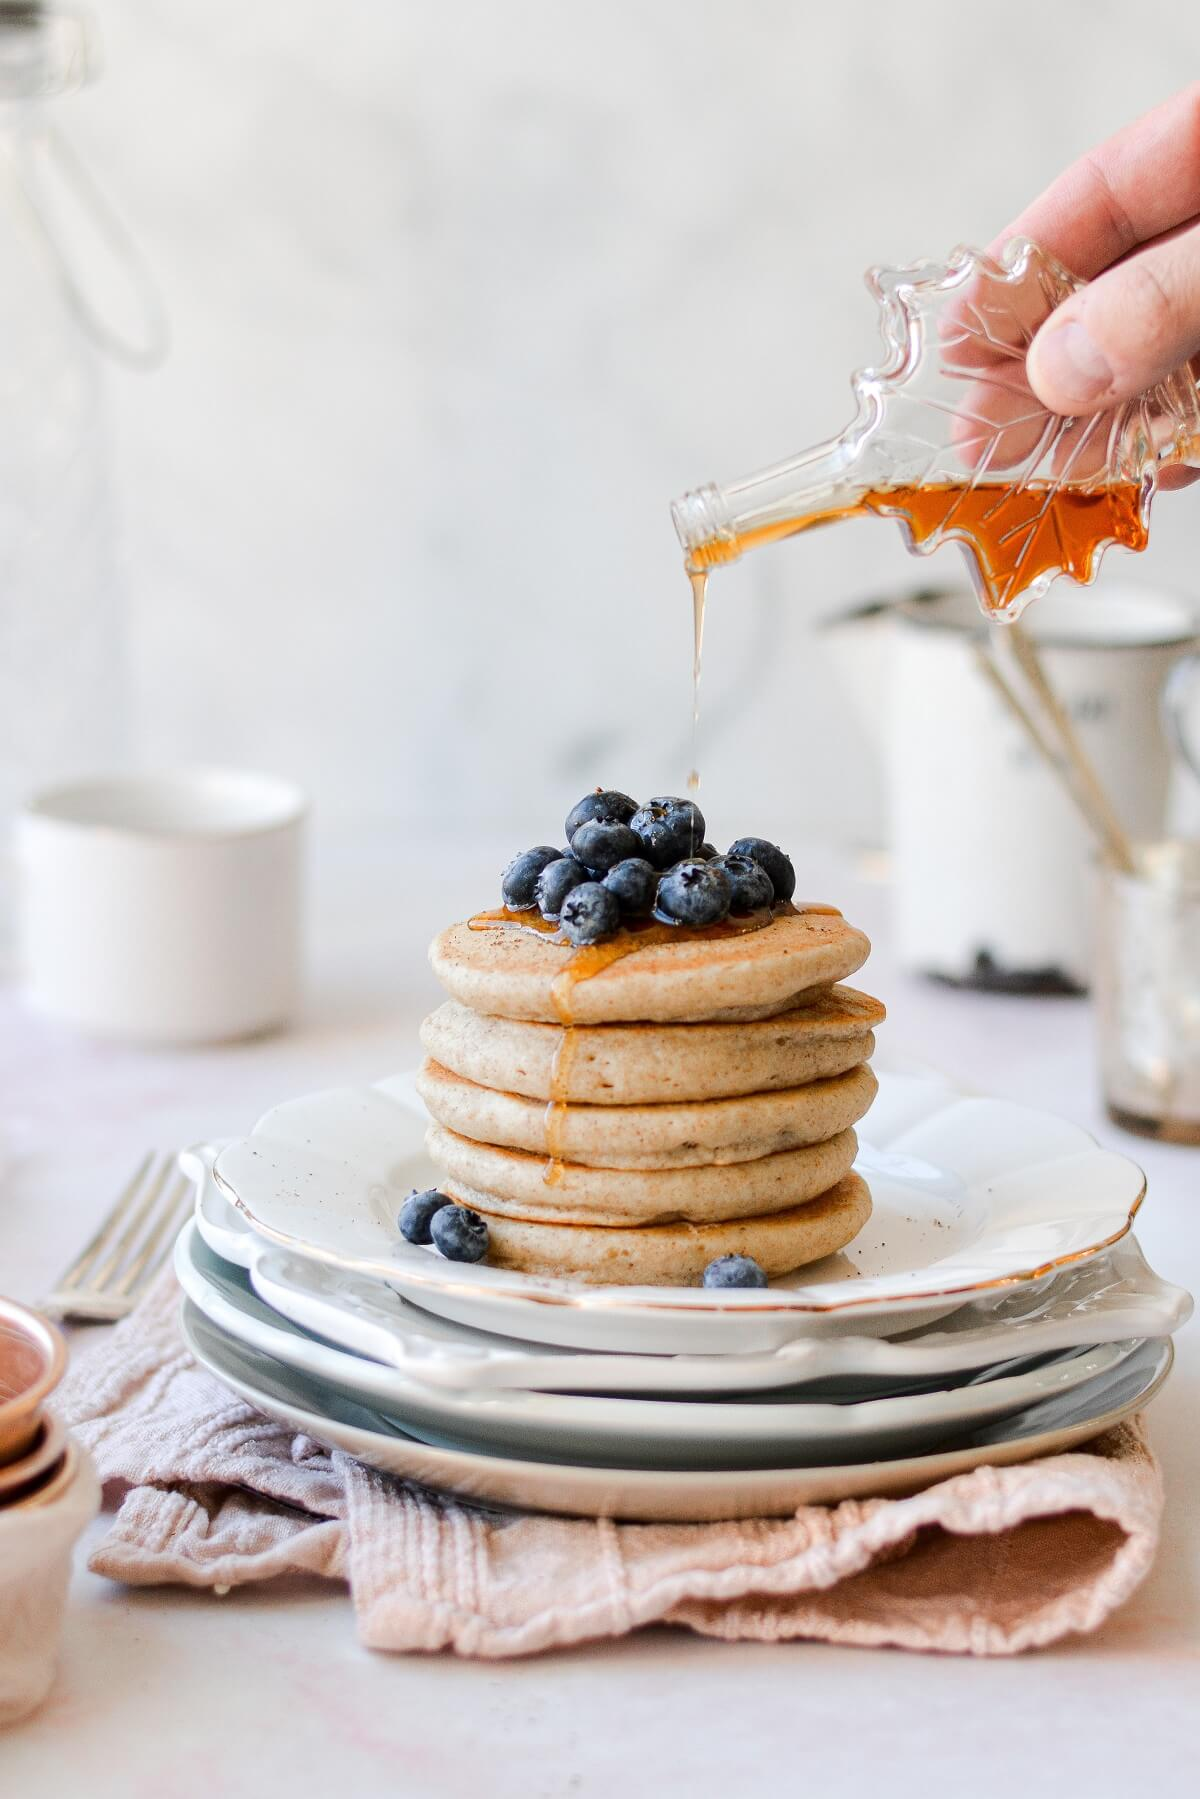 A stack of coconut milk pancakes topped with blueberries, with maple syrup being drizzled on top.